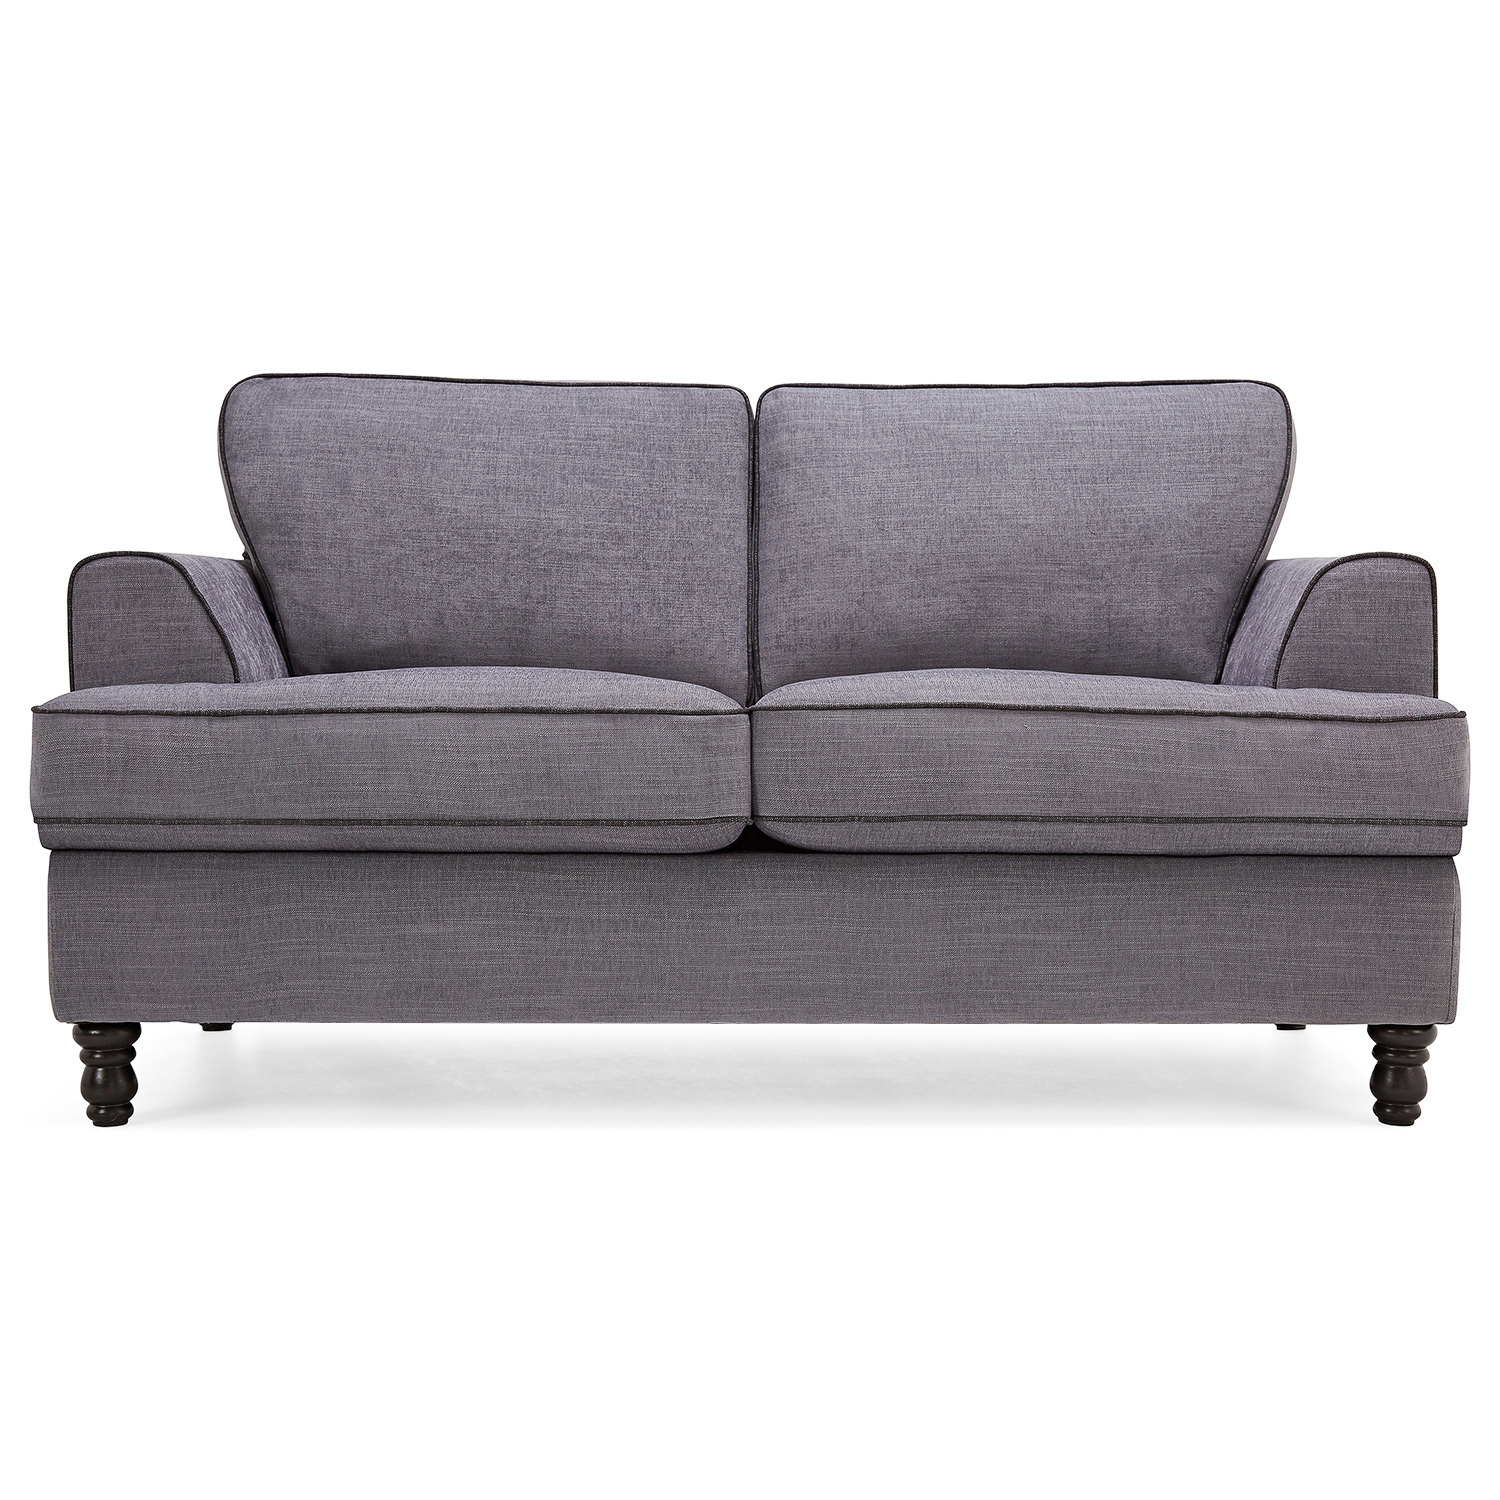 light sofa bed futon difference elena grey with dark piping cavendish